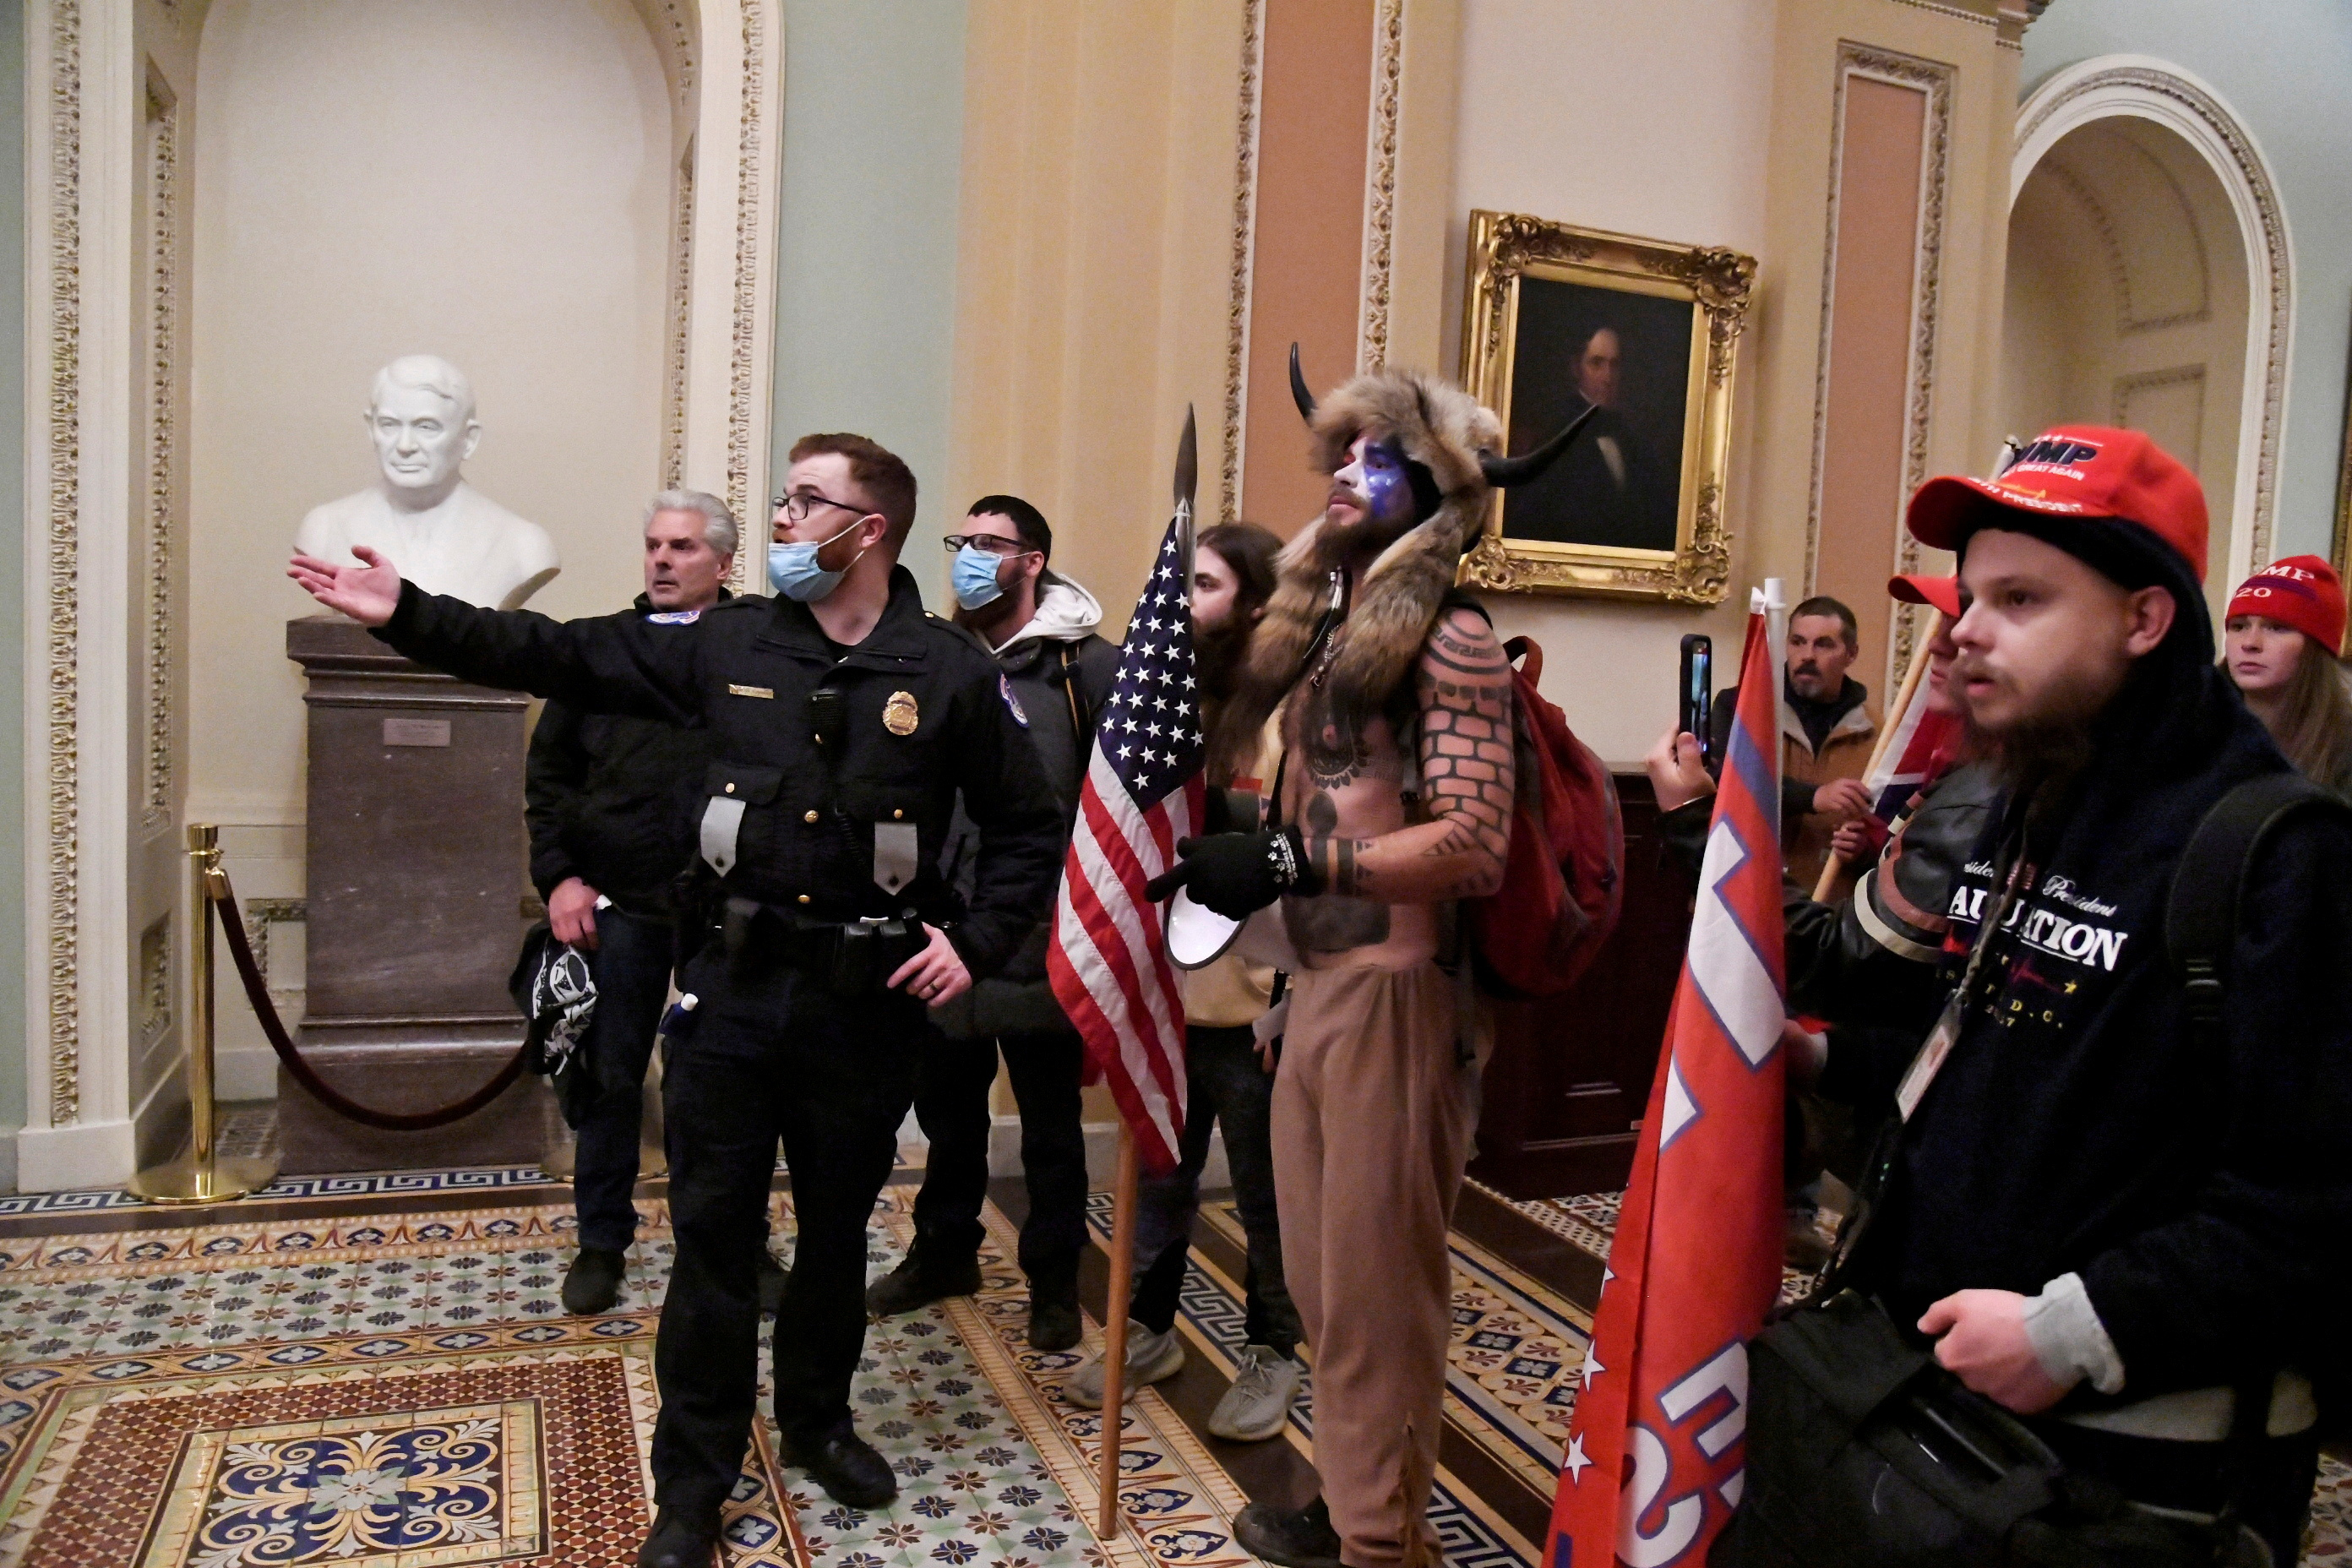 Police speak to supporters of U.S. President Donald Trump, including Jacob Chansley, also known as Jake Angeli, in the horn and fur costume, as they demonstrate on the second floor of the U.S. Capitol near the entrance to the Senate after breaching security defenses, in Washington, U.S., January 6, 2021. Picture taken January 6, 2021.        REUTERS/Mike Theiler